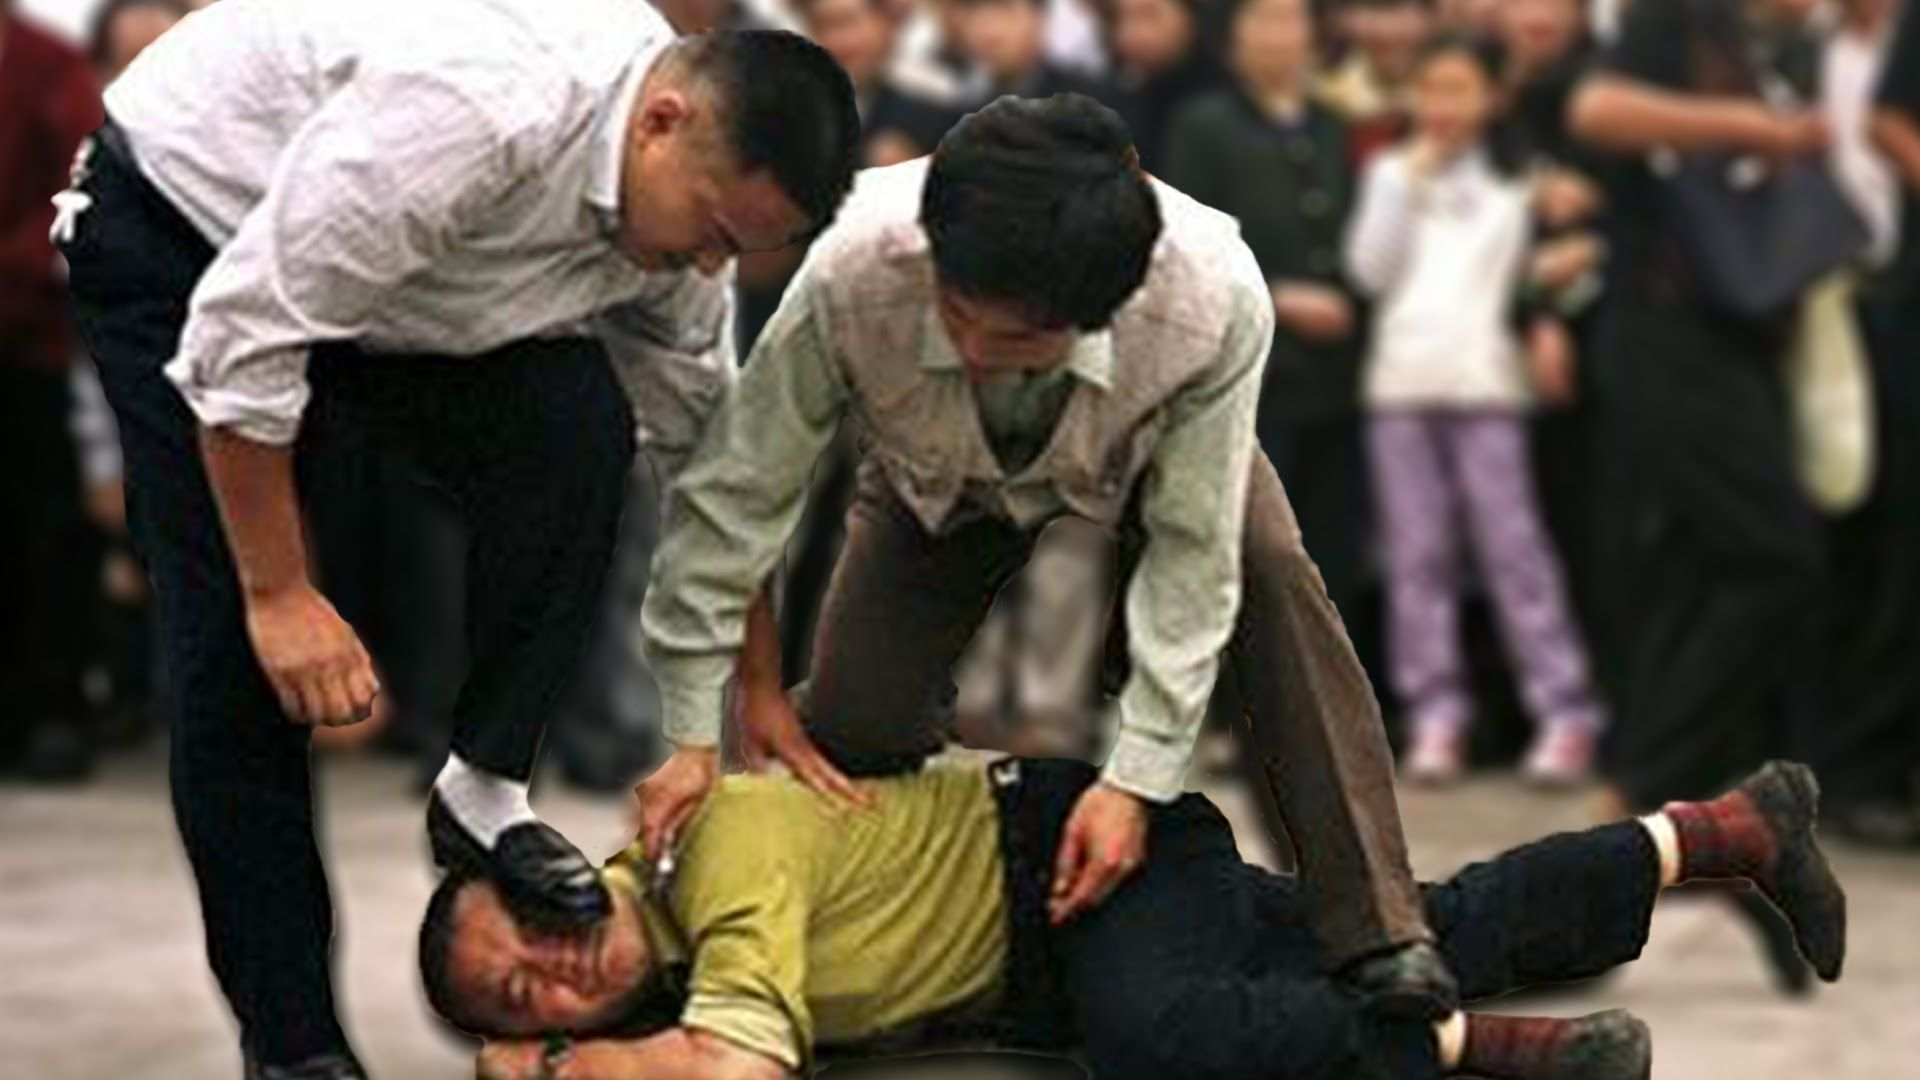 Guards drew my blood: Falun Gong practitioner recalls nightmare in Chinese detention - FalunInfo